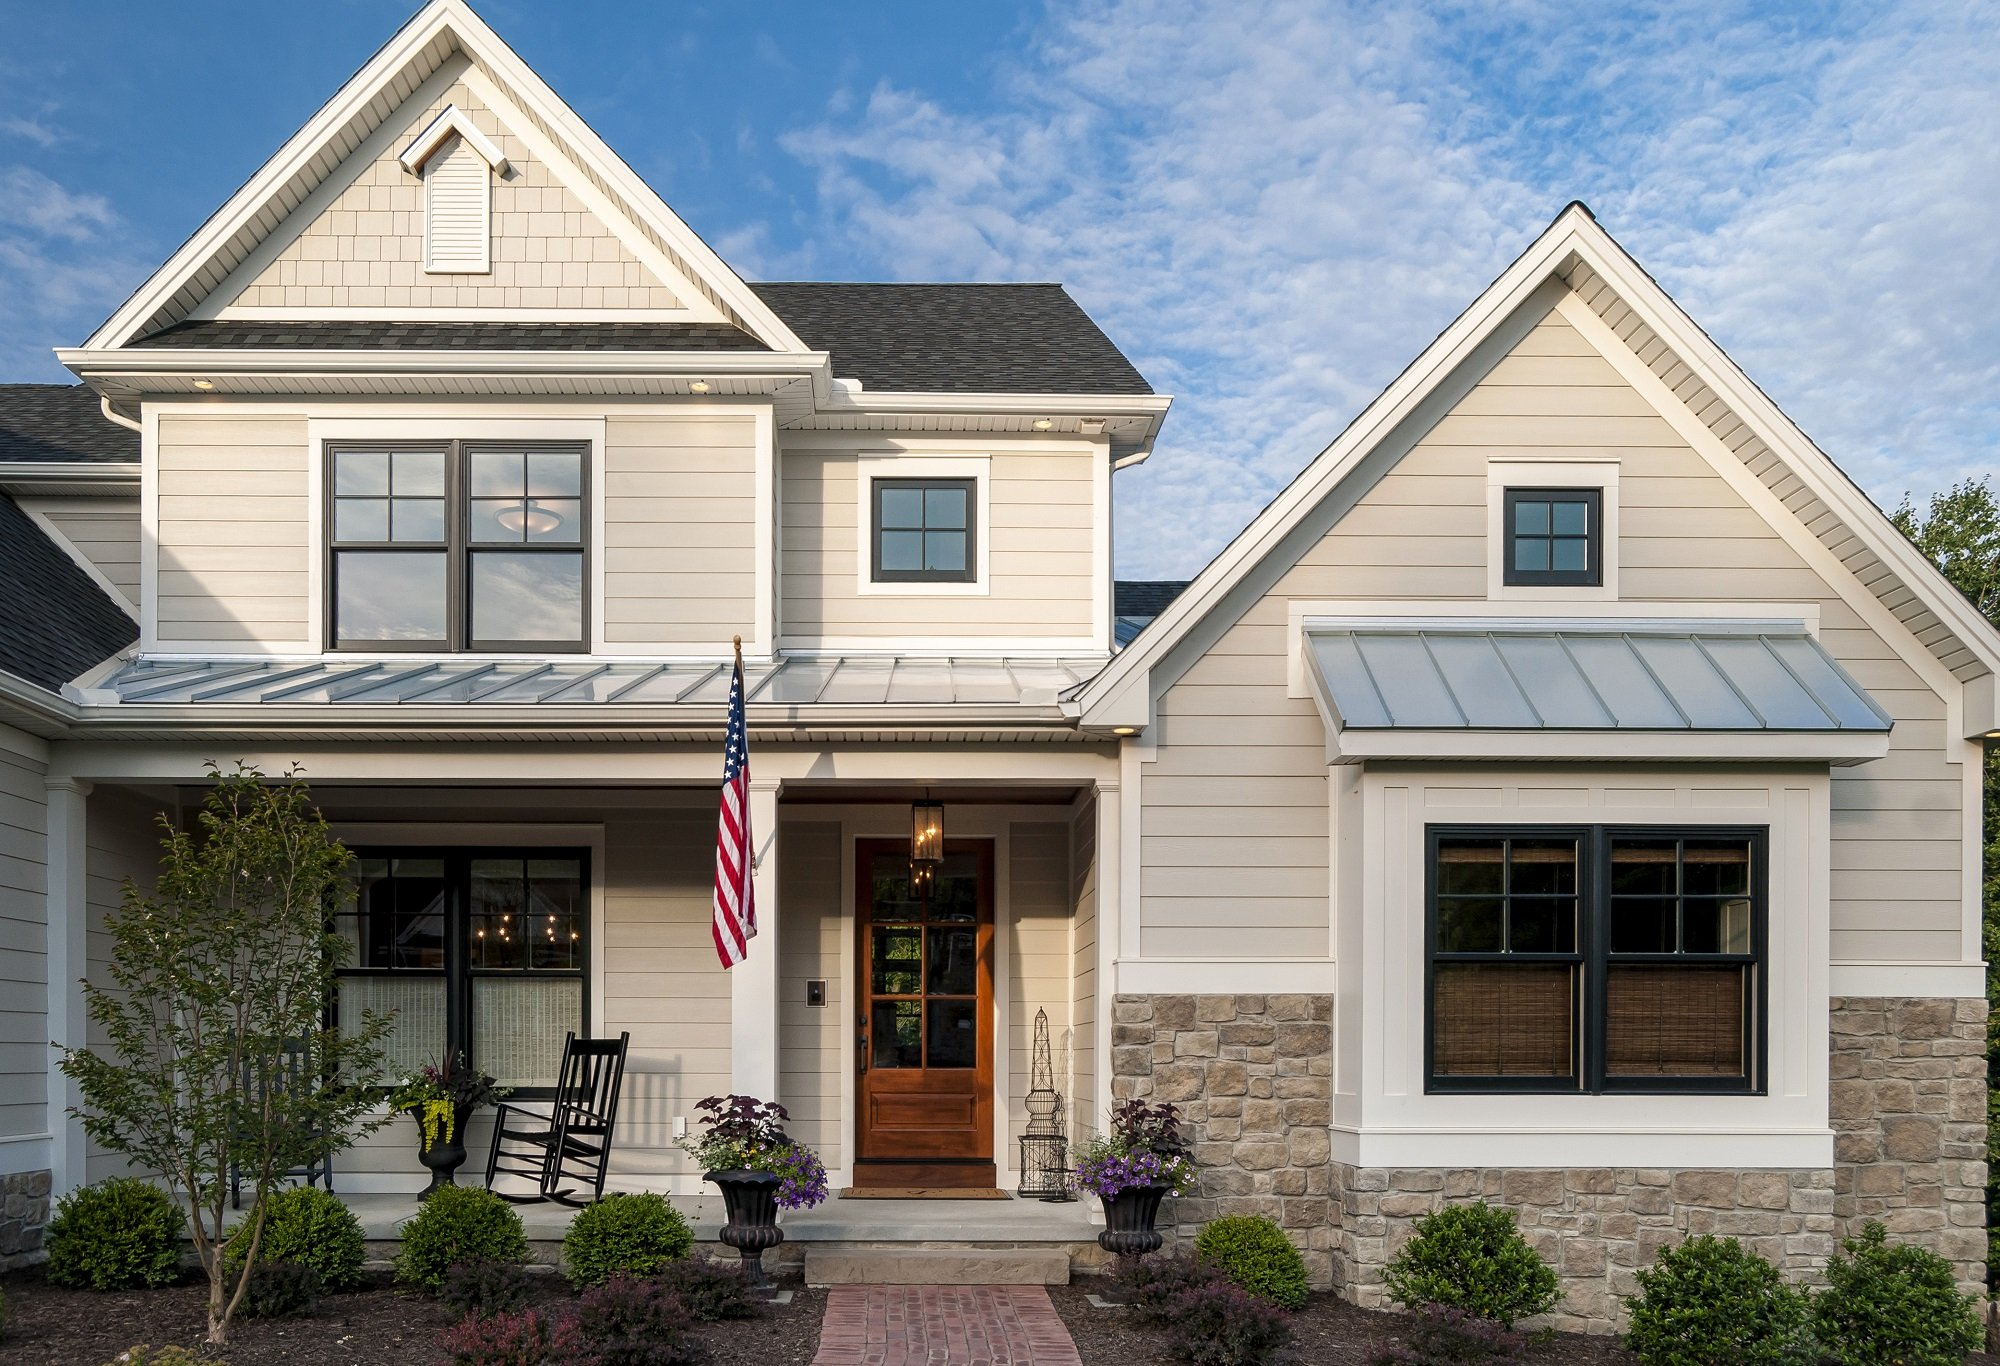 100 Fiber Cement Siding Pros And Cons Fiber Cement